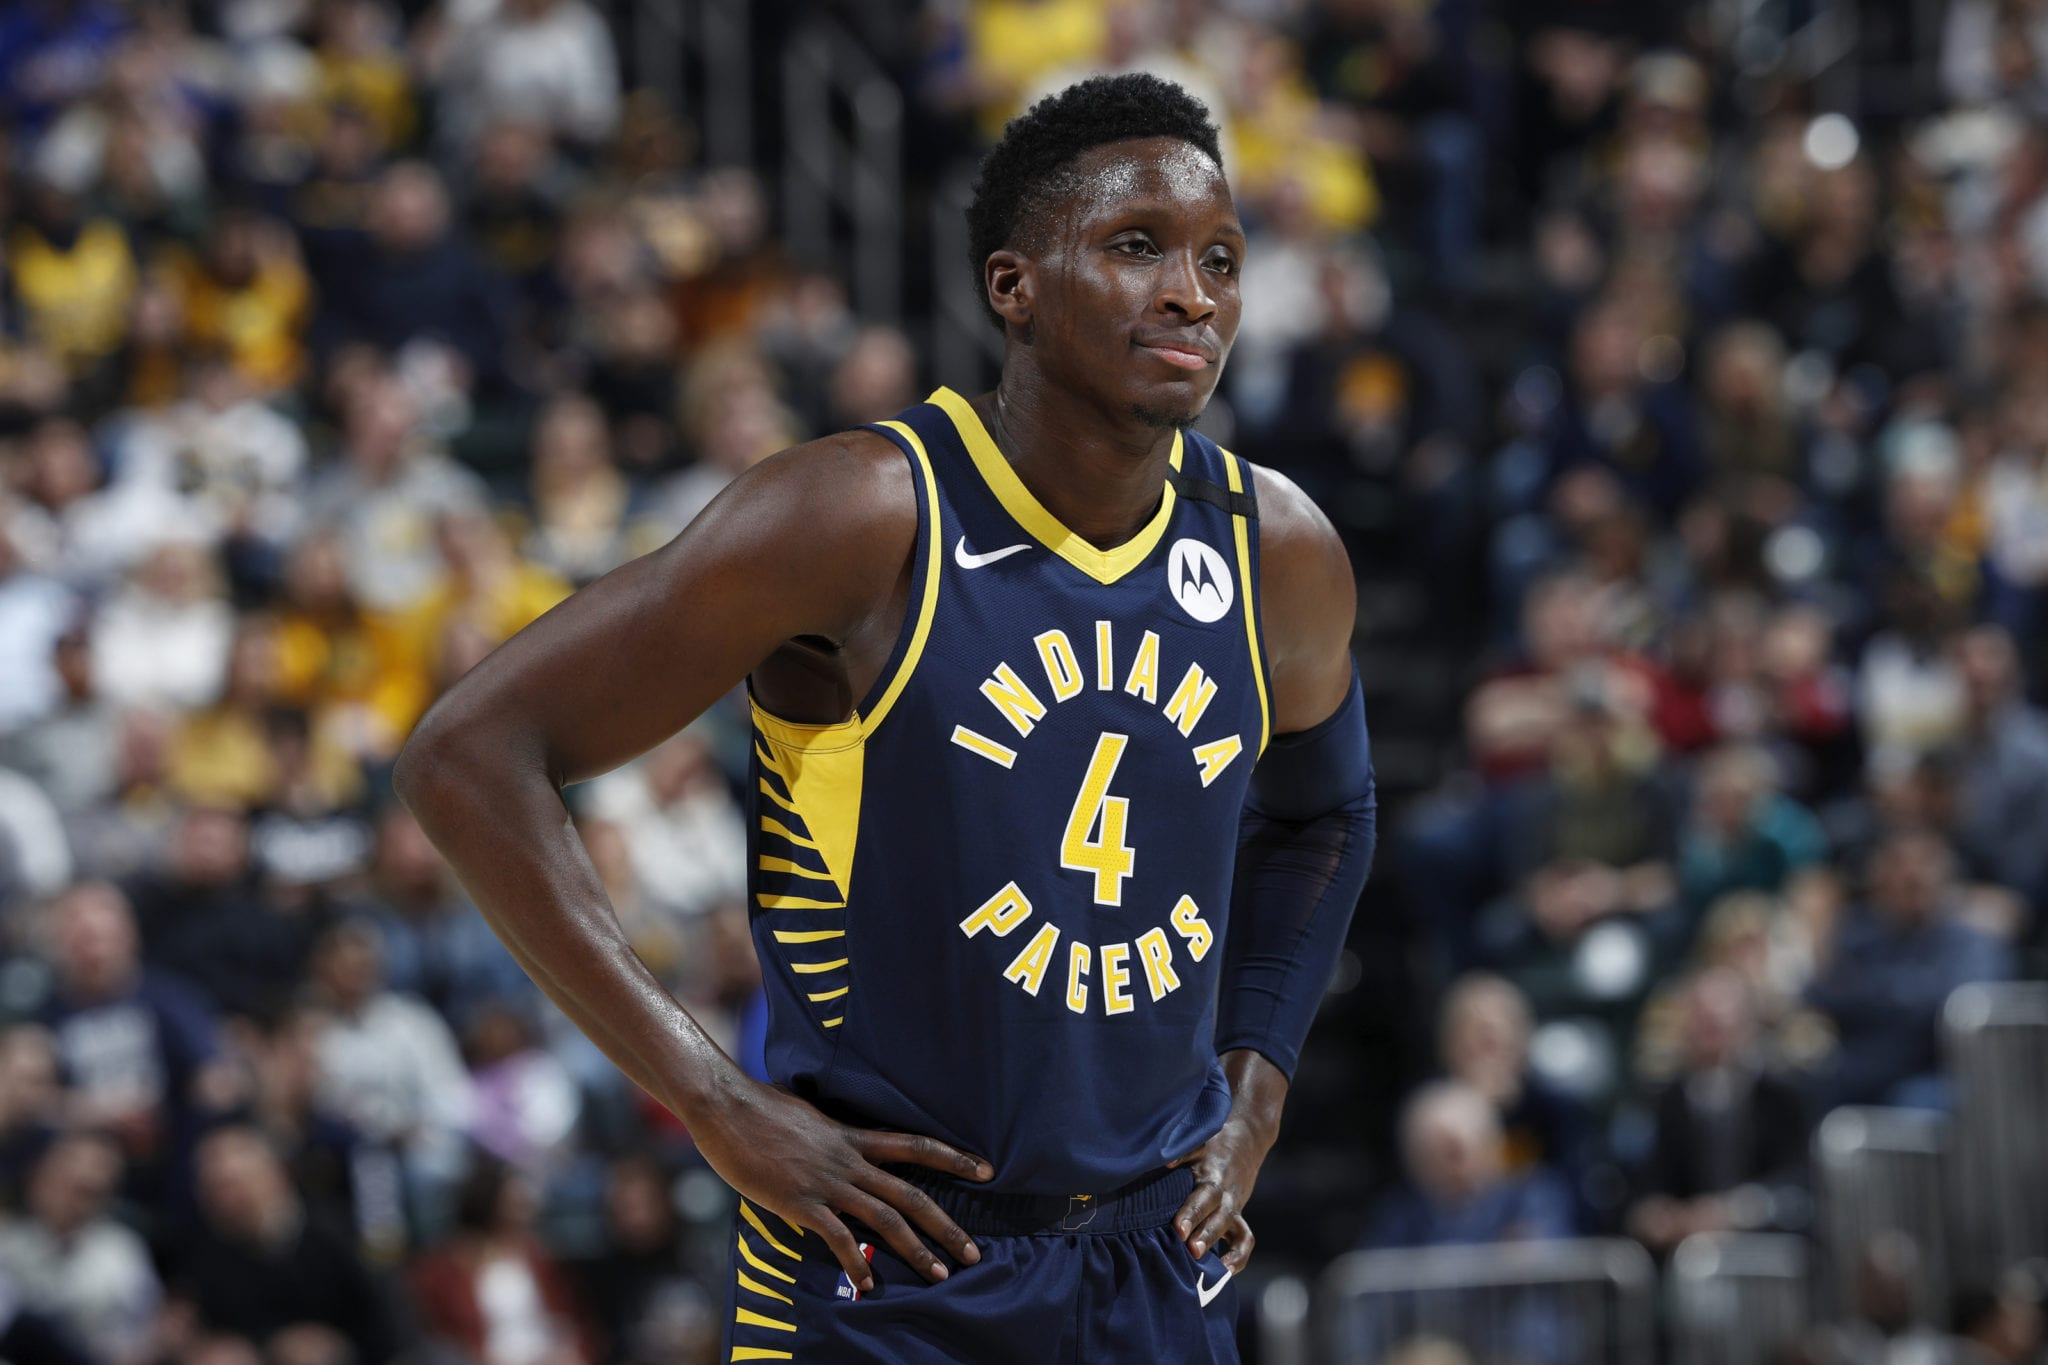 Victor Oladipo Trade Rumors: Is the Pacers Star on the Block?